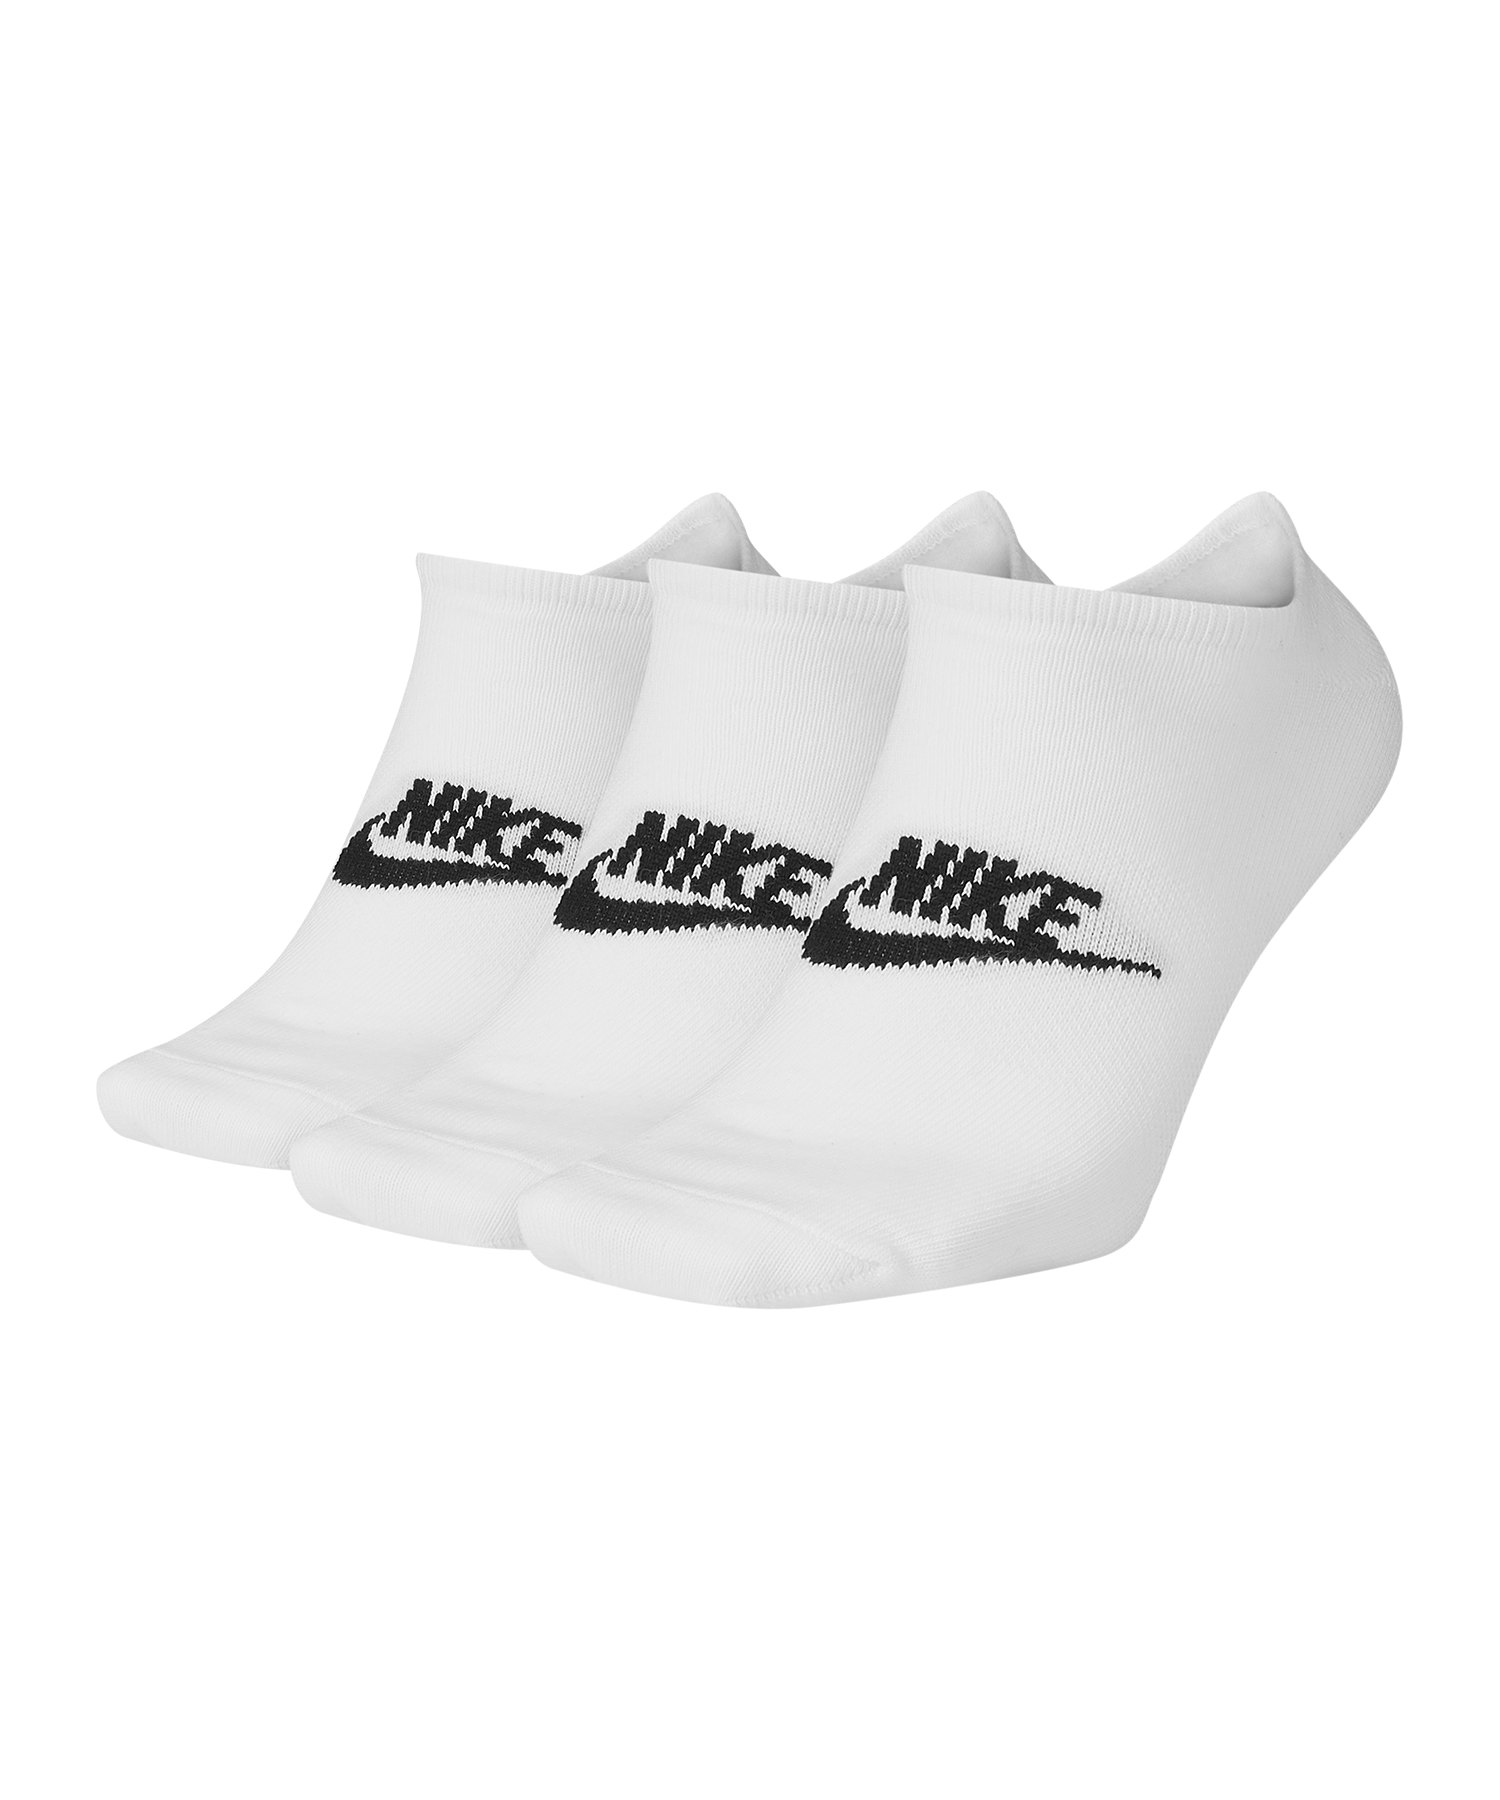 Nike Everyday Essential Füsslinge 3er Pack F100 - weiss